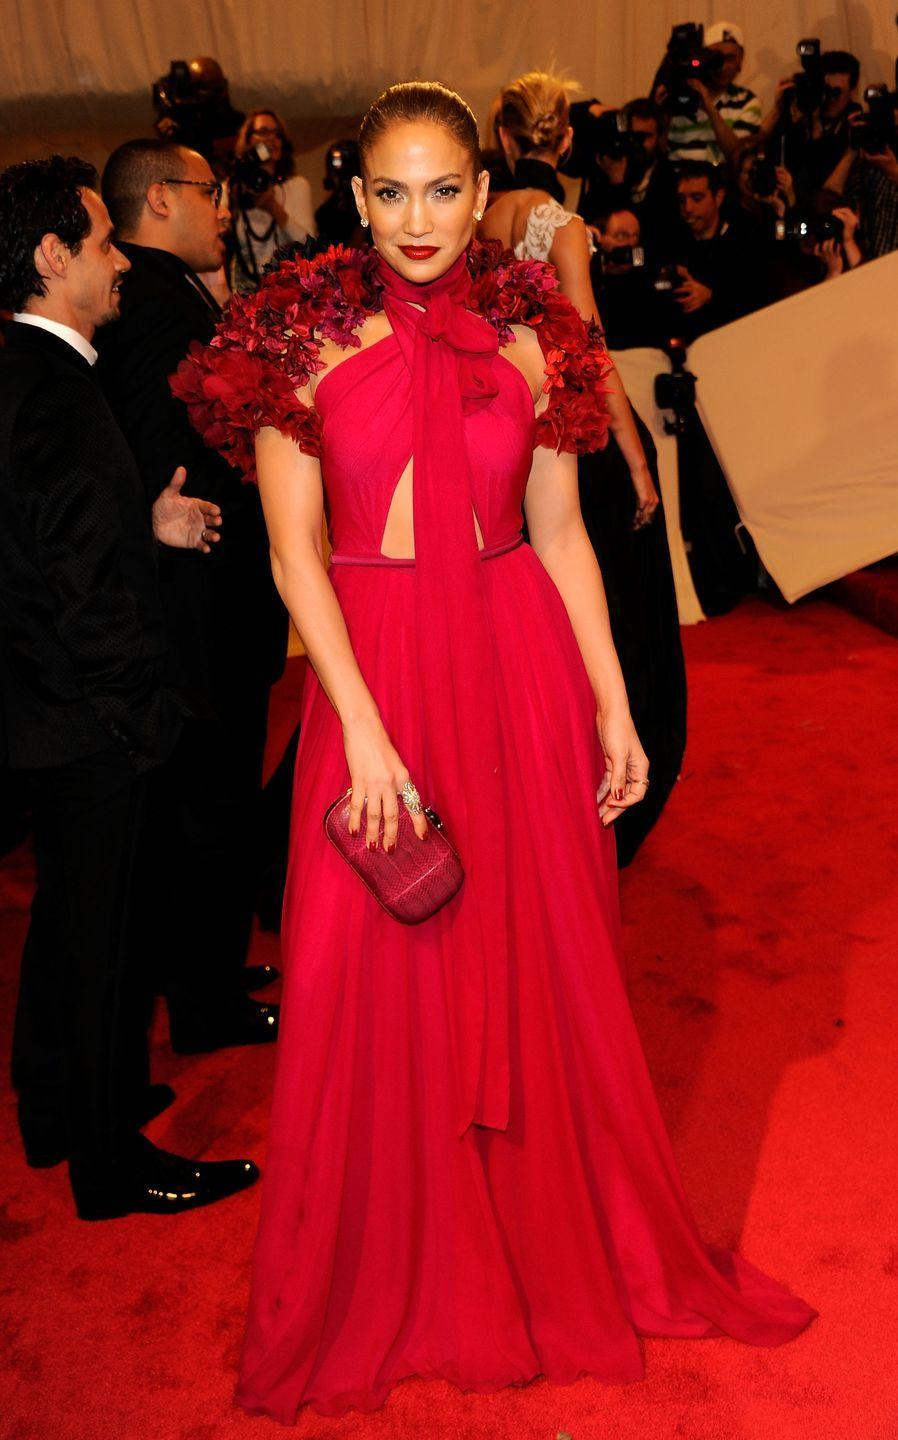 <p><strong>When: </strong>May 2011</p><p><strong>Where: </strong>The Met Gala</p><p><strong>Wearing: </strong>Gucci</p>